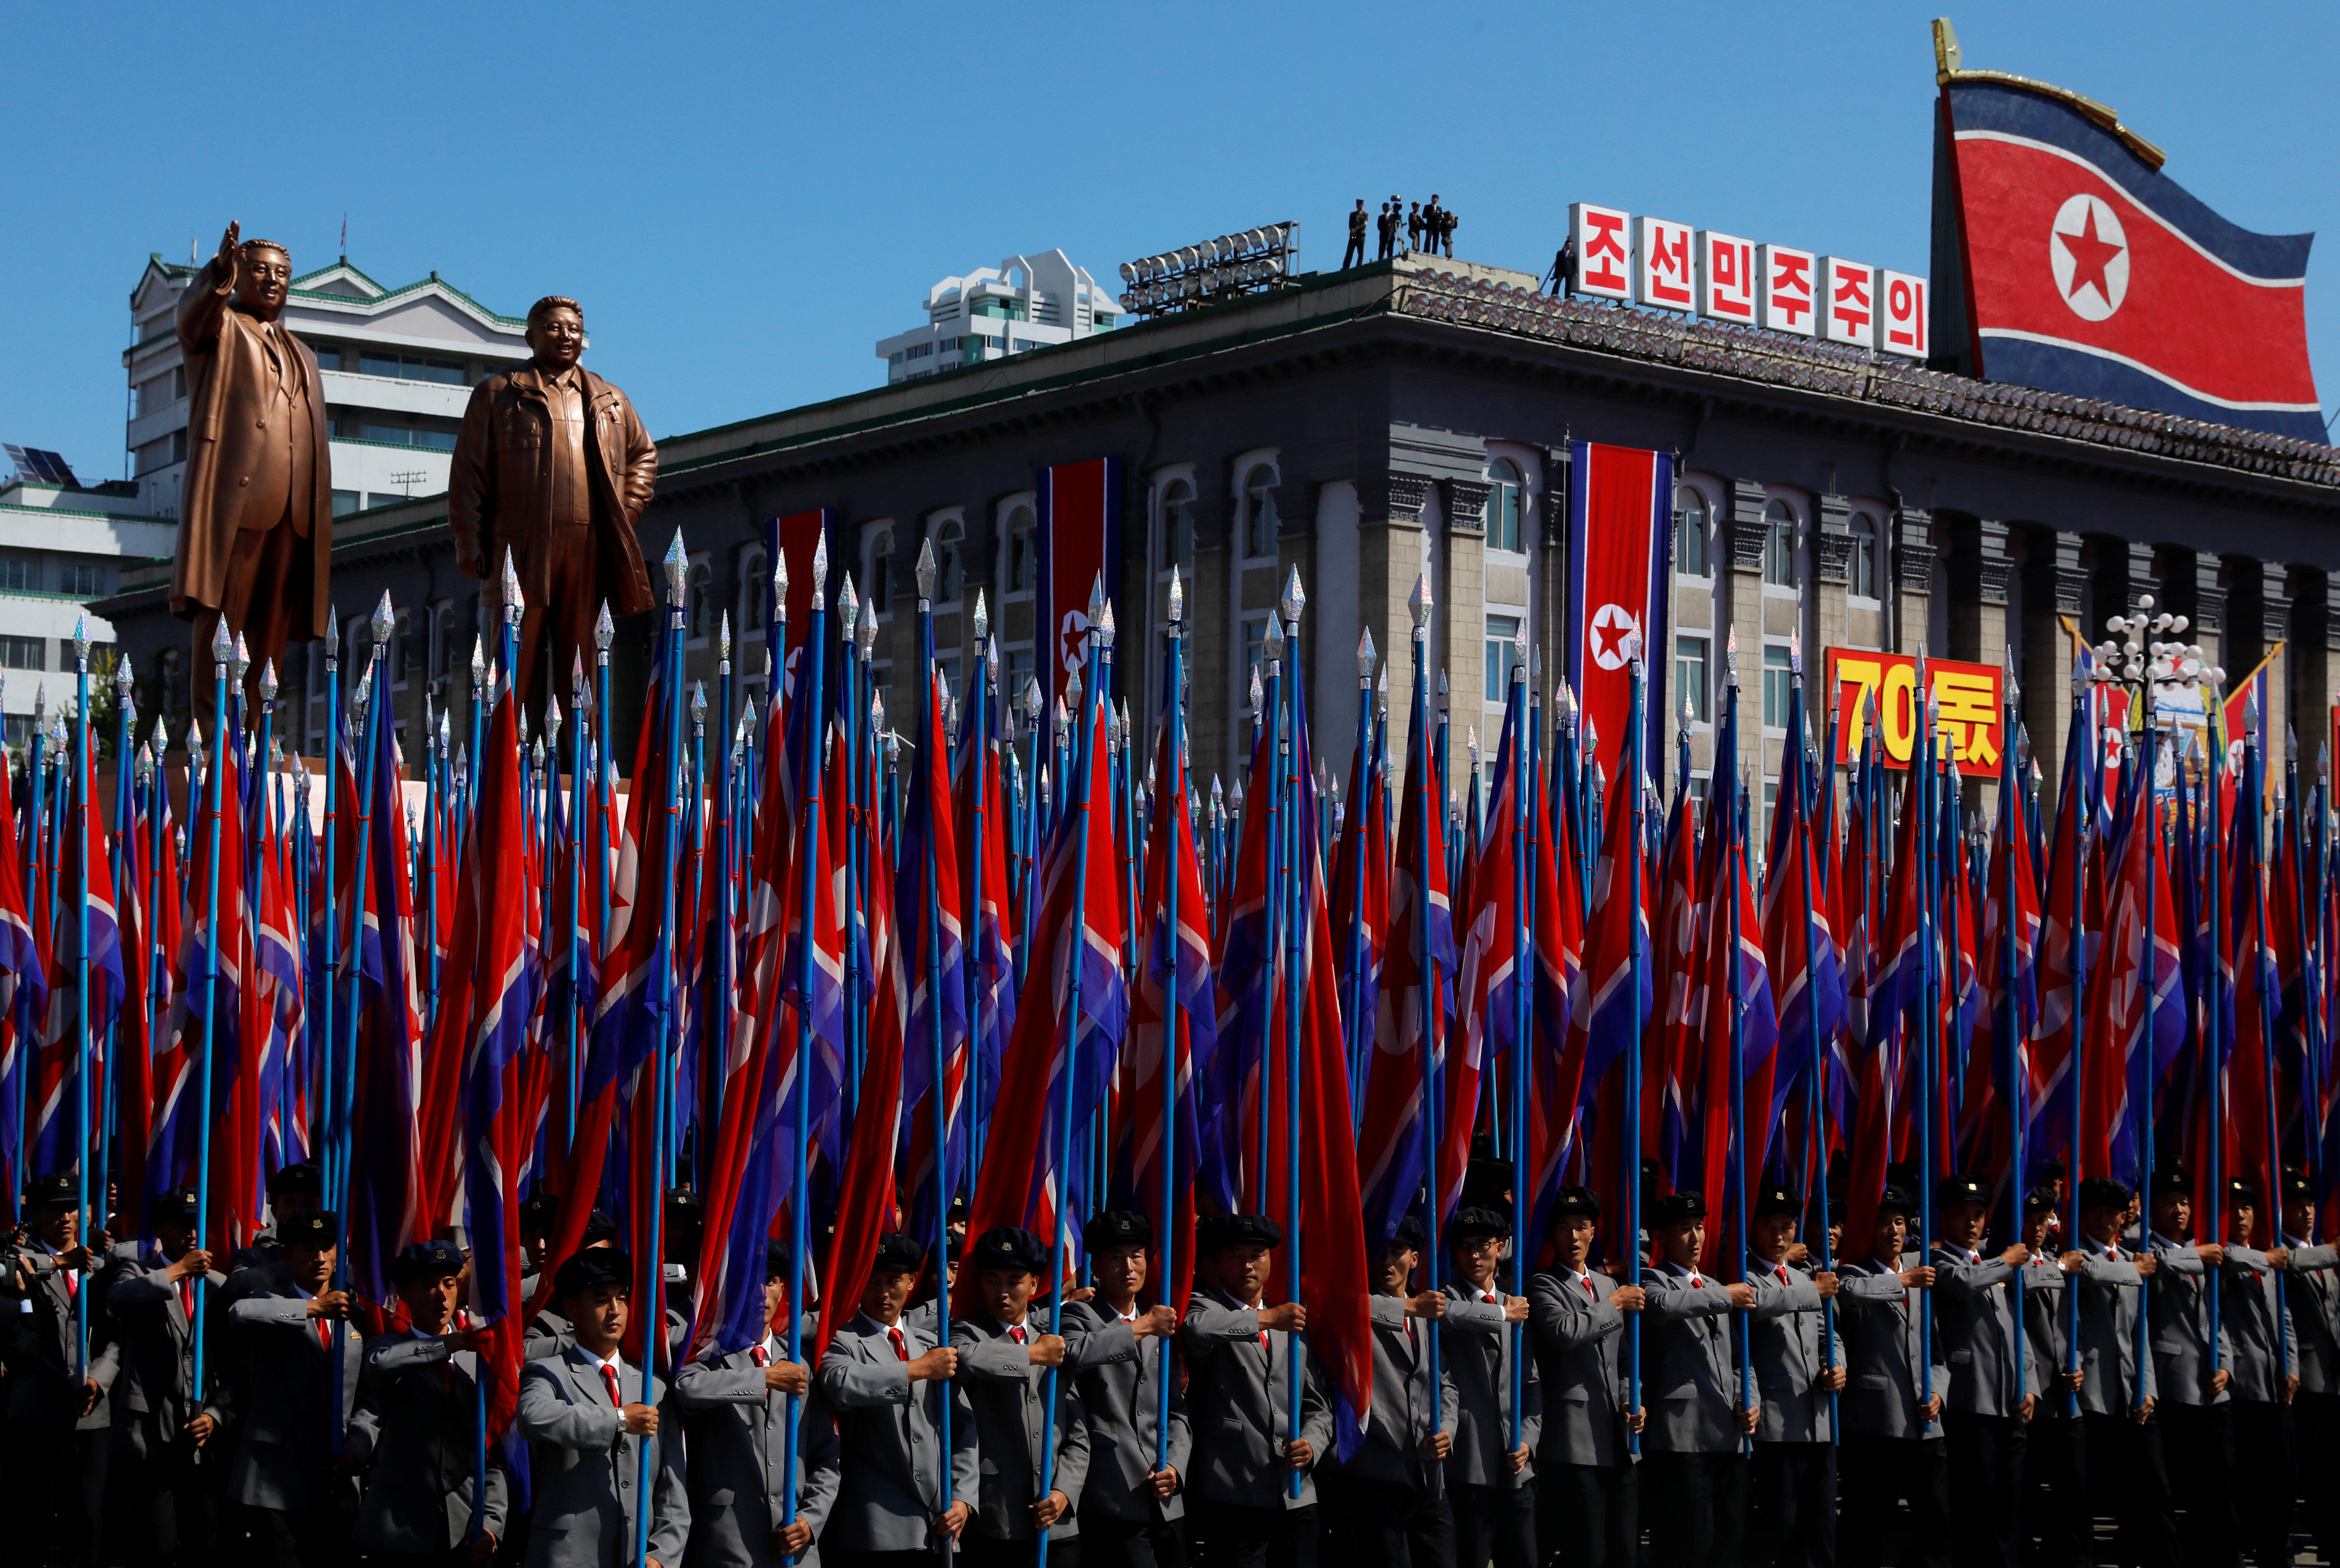 People carry flags in front of statues of North Korea founder Kim Il Sung (L) and late leader Kim Jong Il during a military parade marking the 70th anniversary of North Korea's foundation in Pyongyang, North Korea, September 9, 2018. REUTERS/Danish Siddiqui